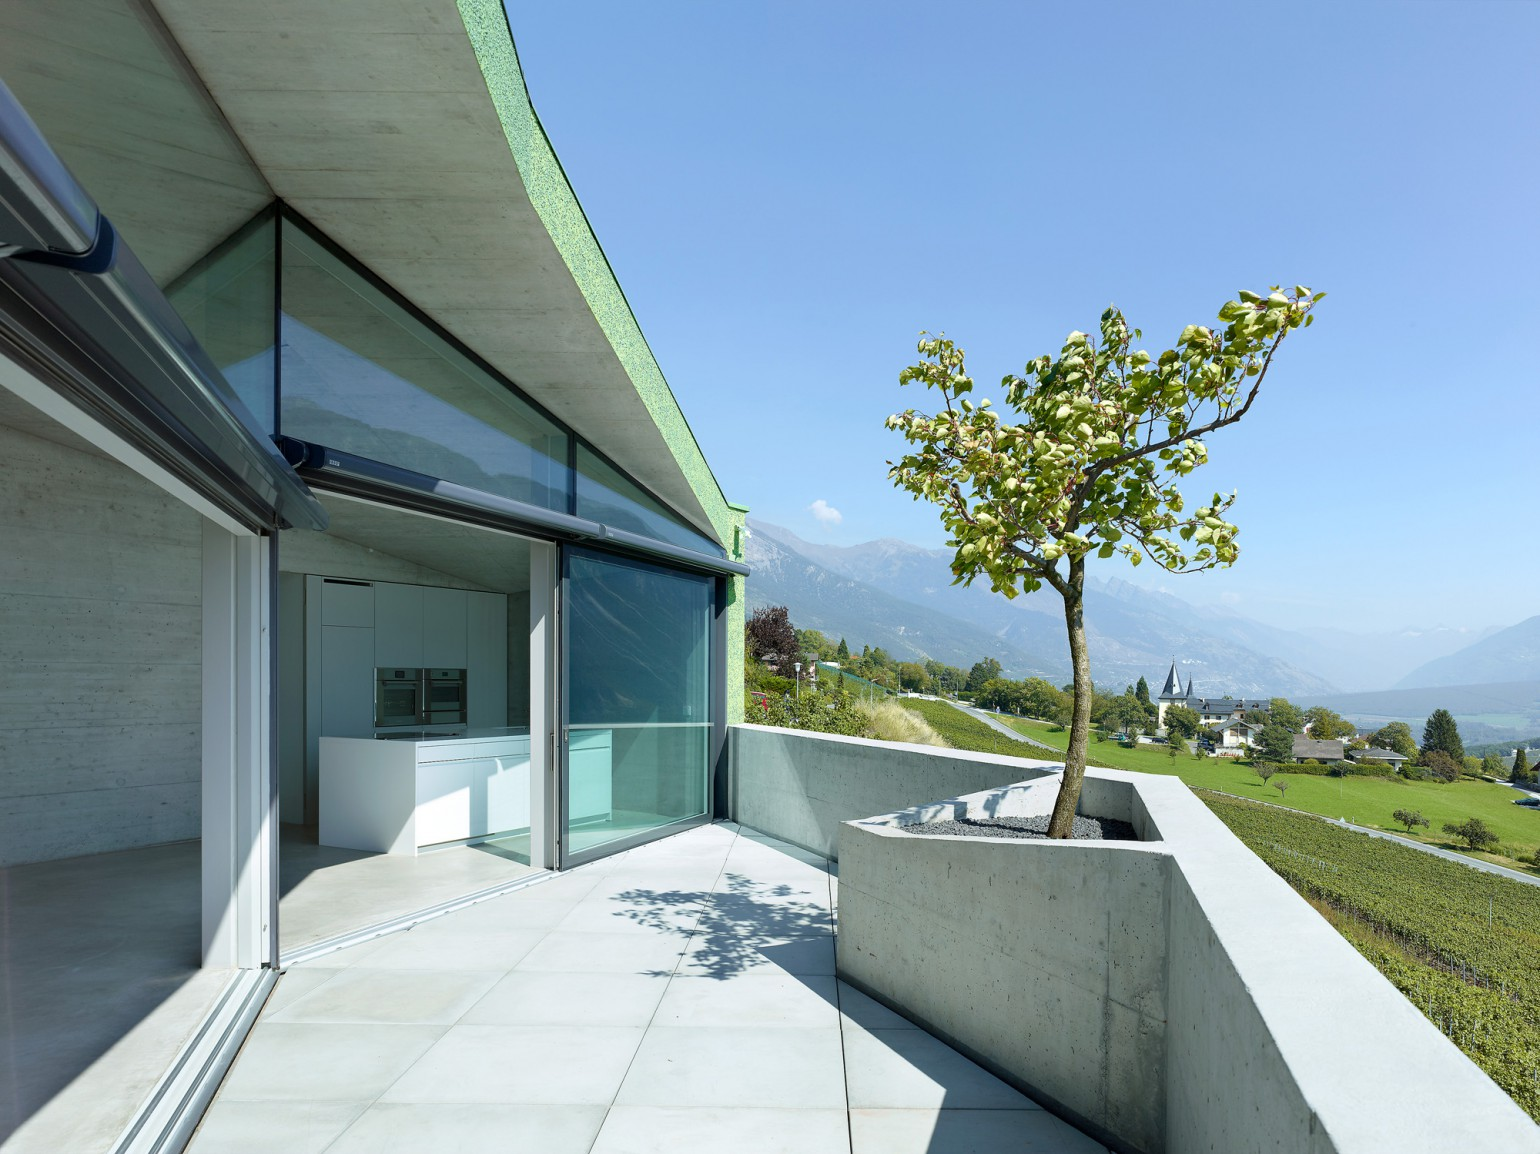 maison-iseli-venthone-meyer-architecture-sion-06